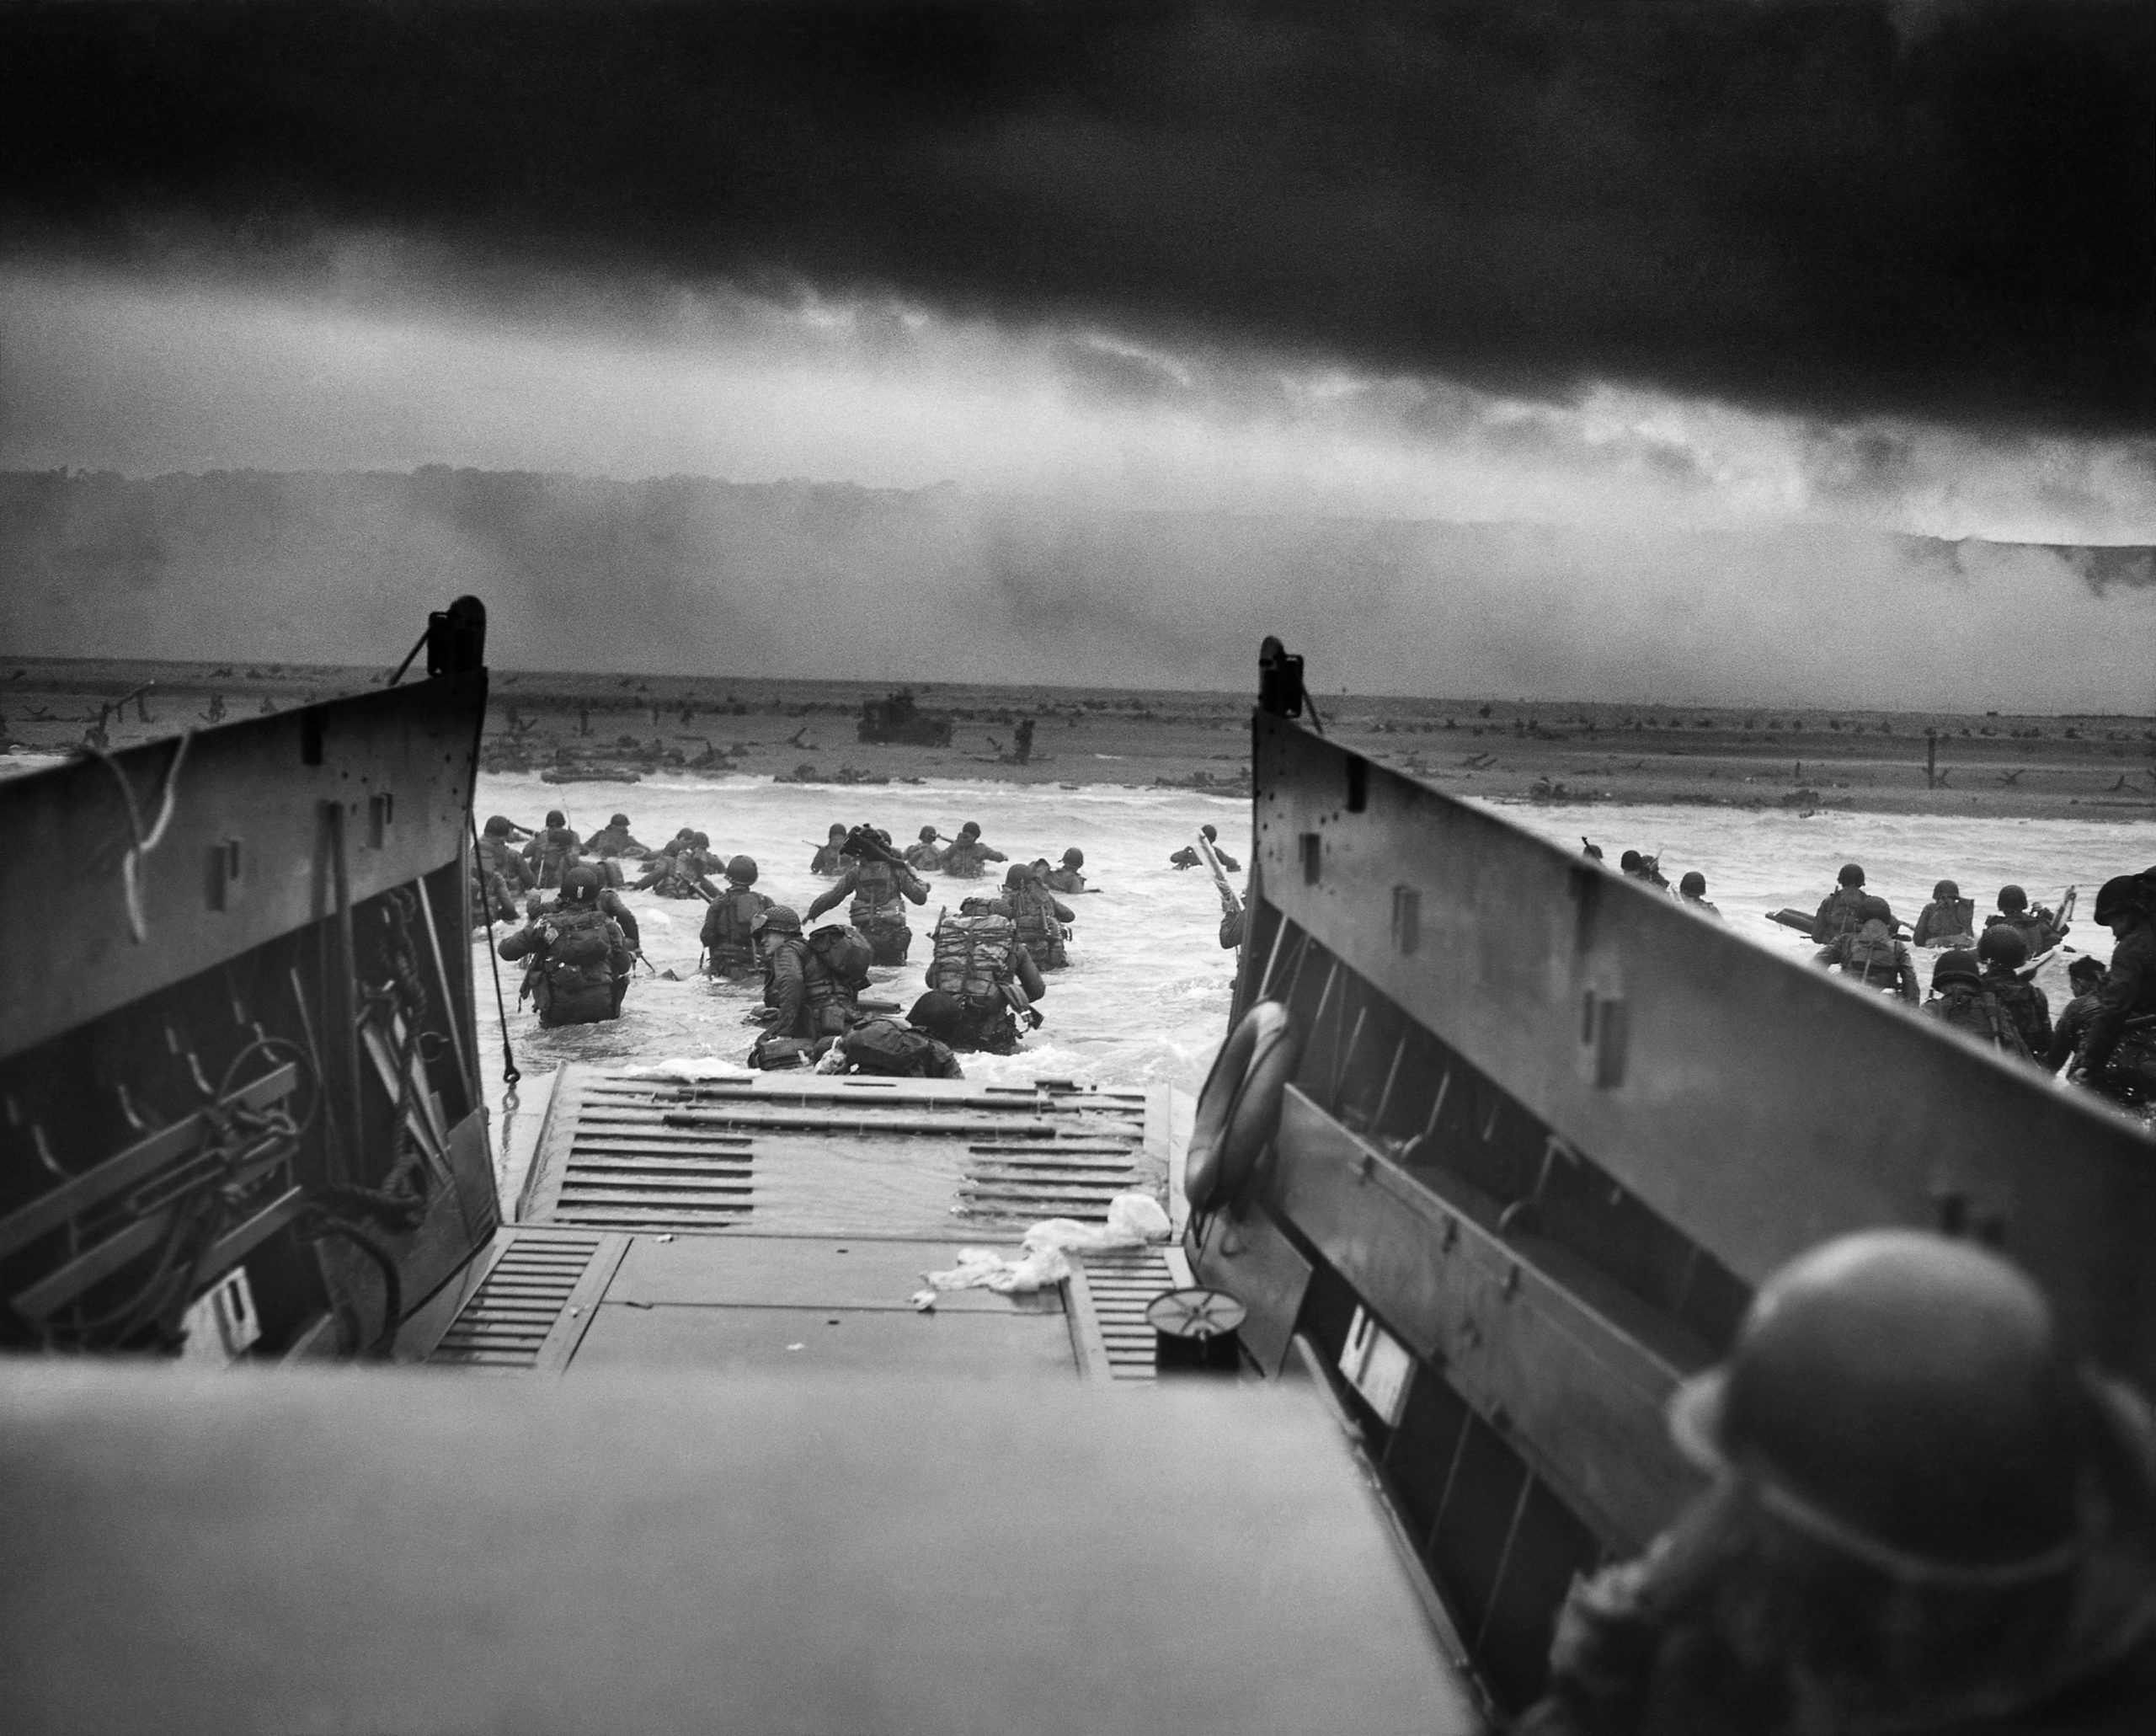 Troops landing on Omaha Beach, Normandy on D-Day